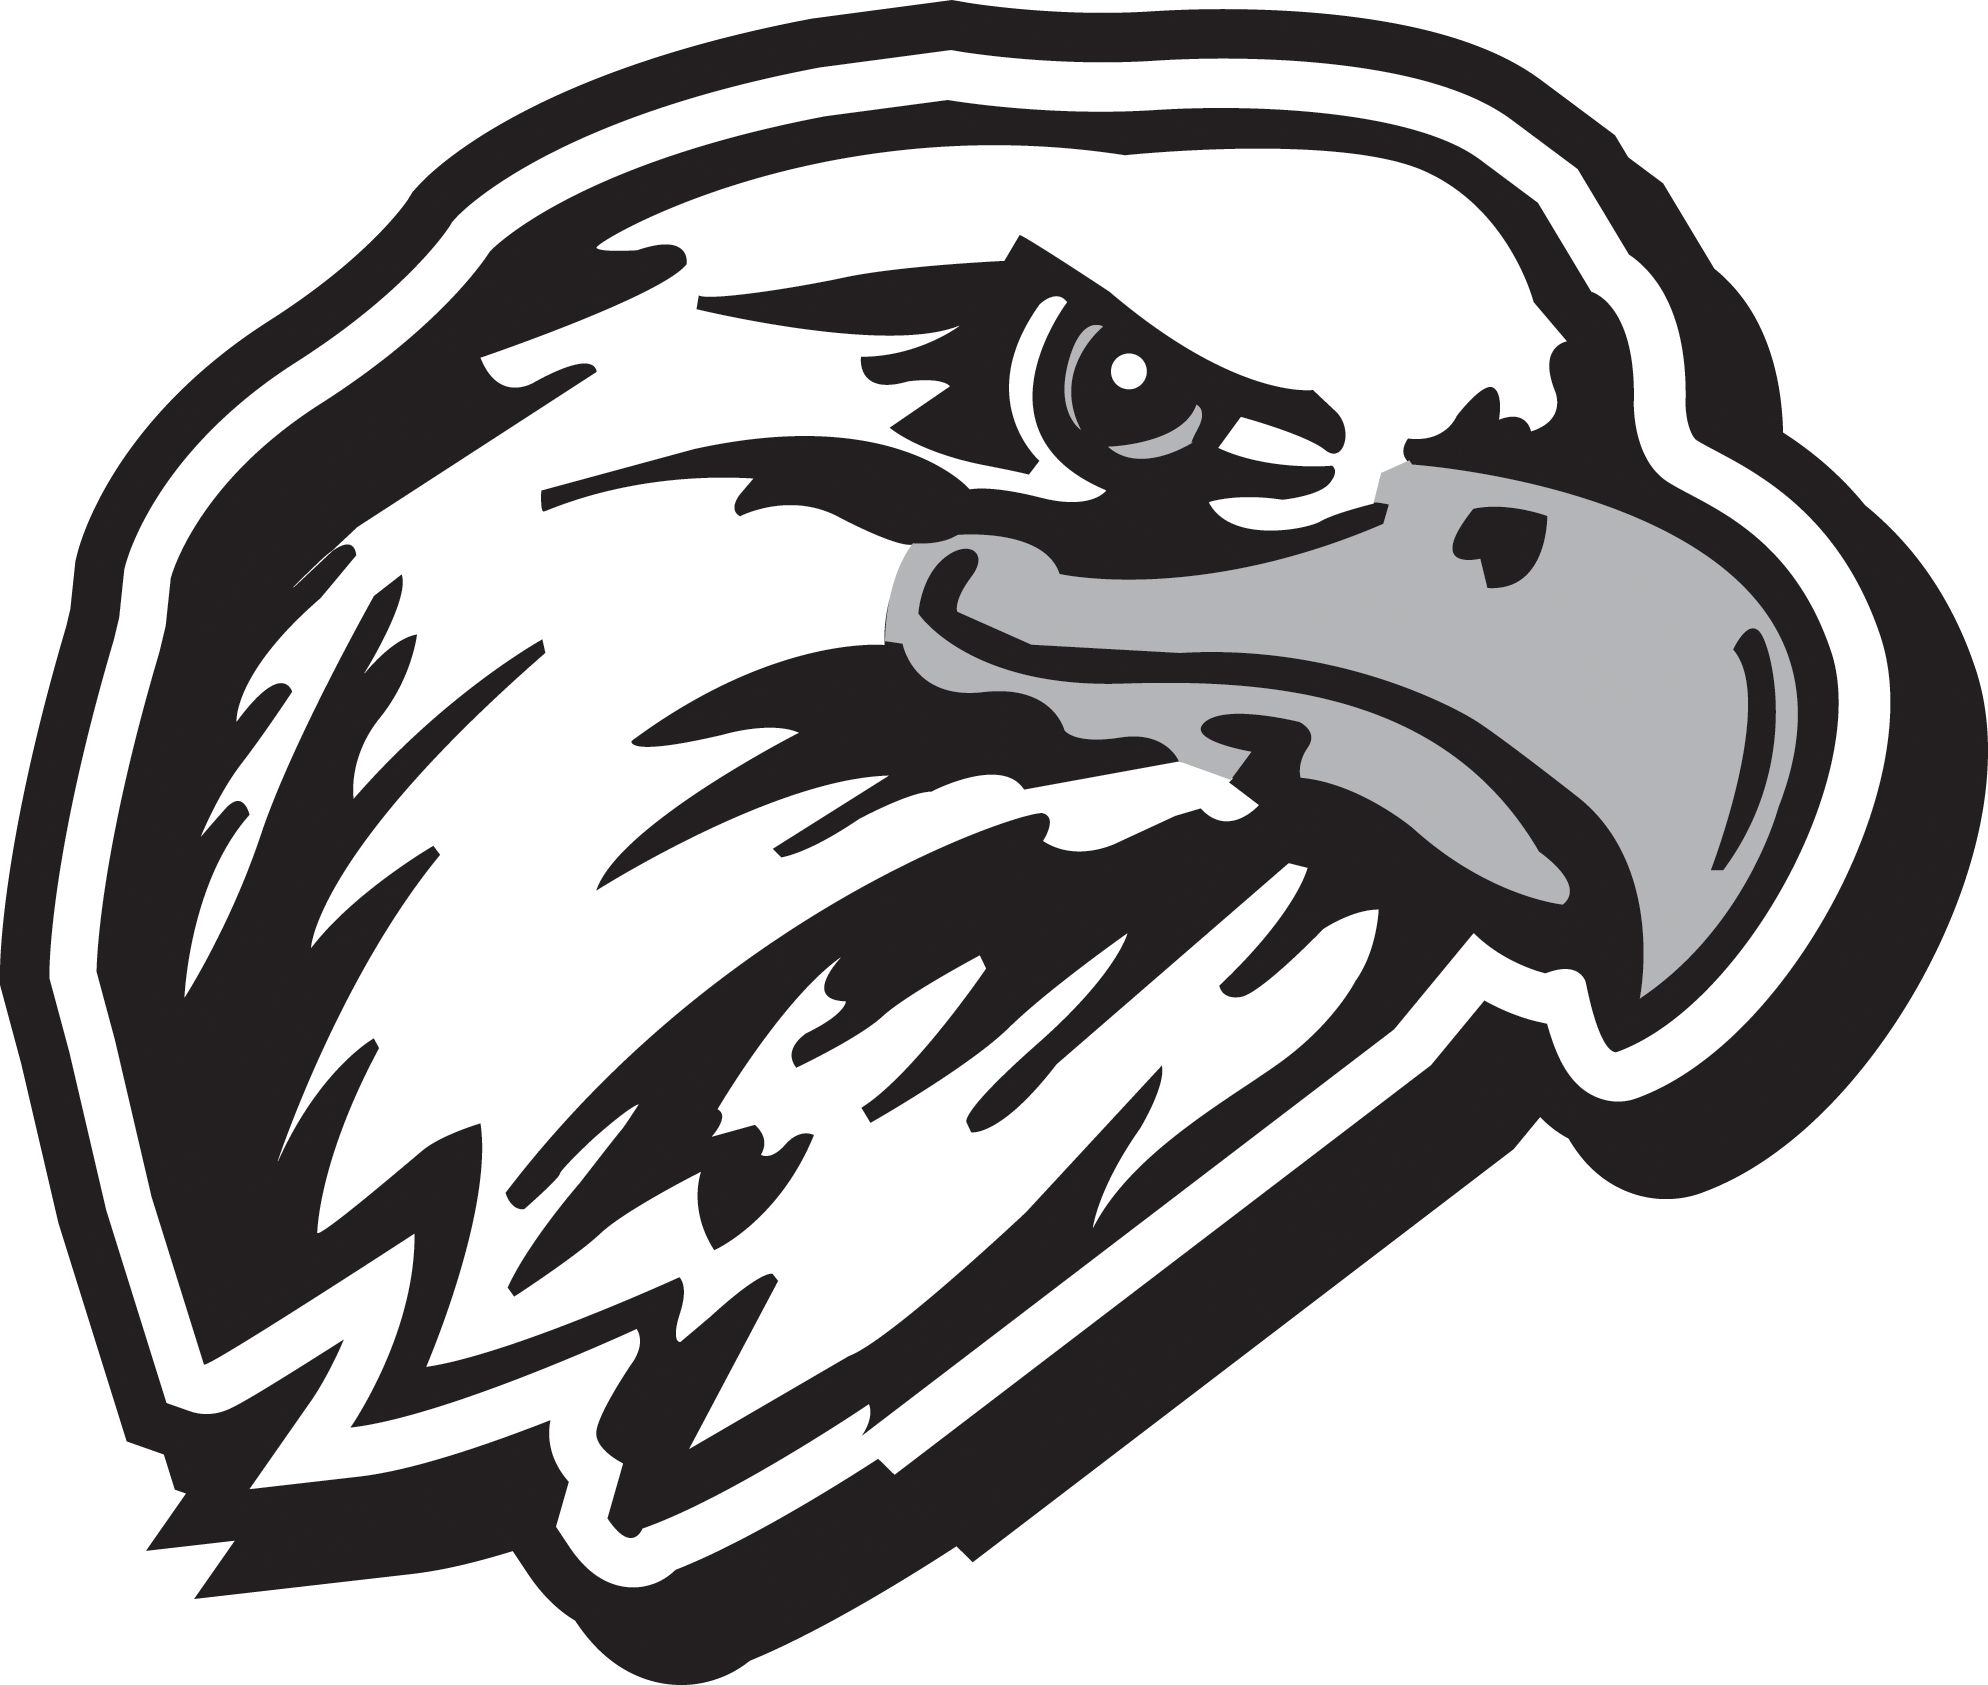 Black and White Eagle Football Logo - LogoDix